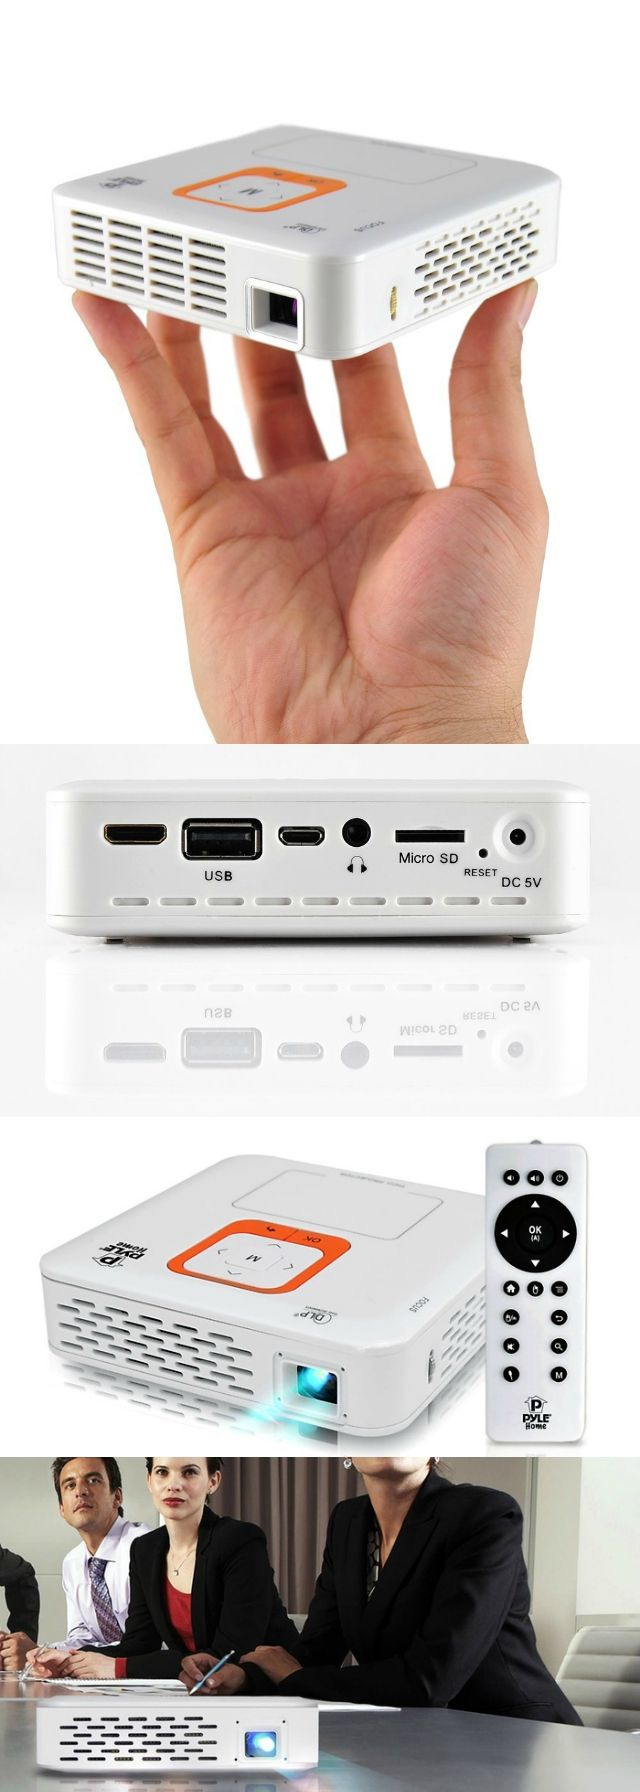 Pyle smart pocket projector presentations in your palm for Palm projector